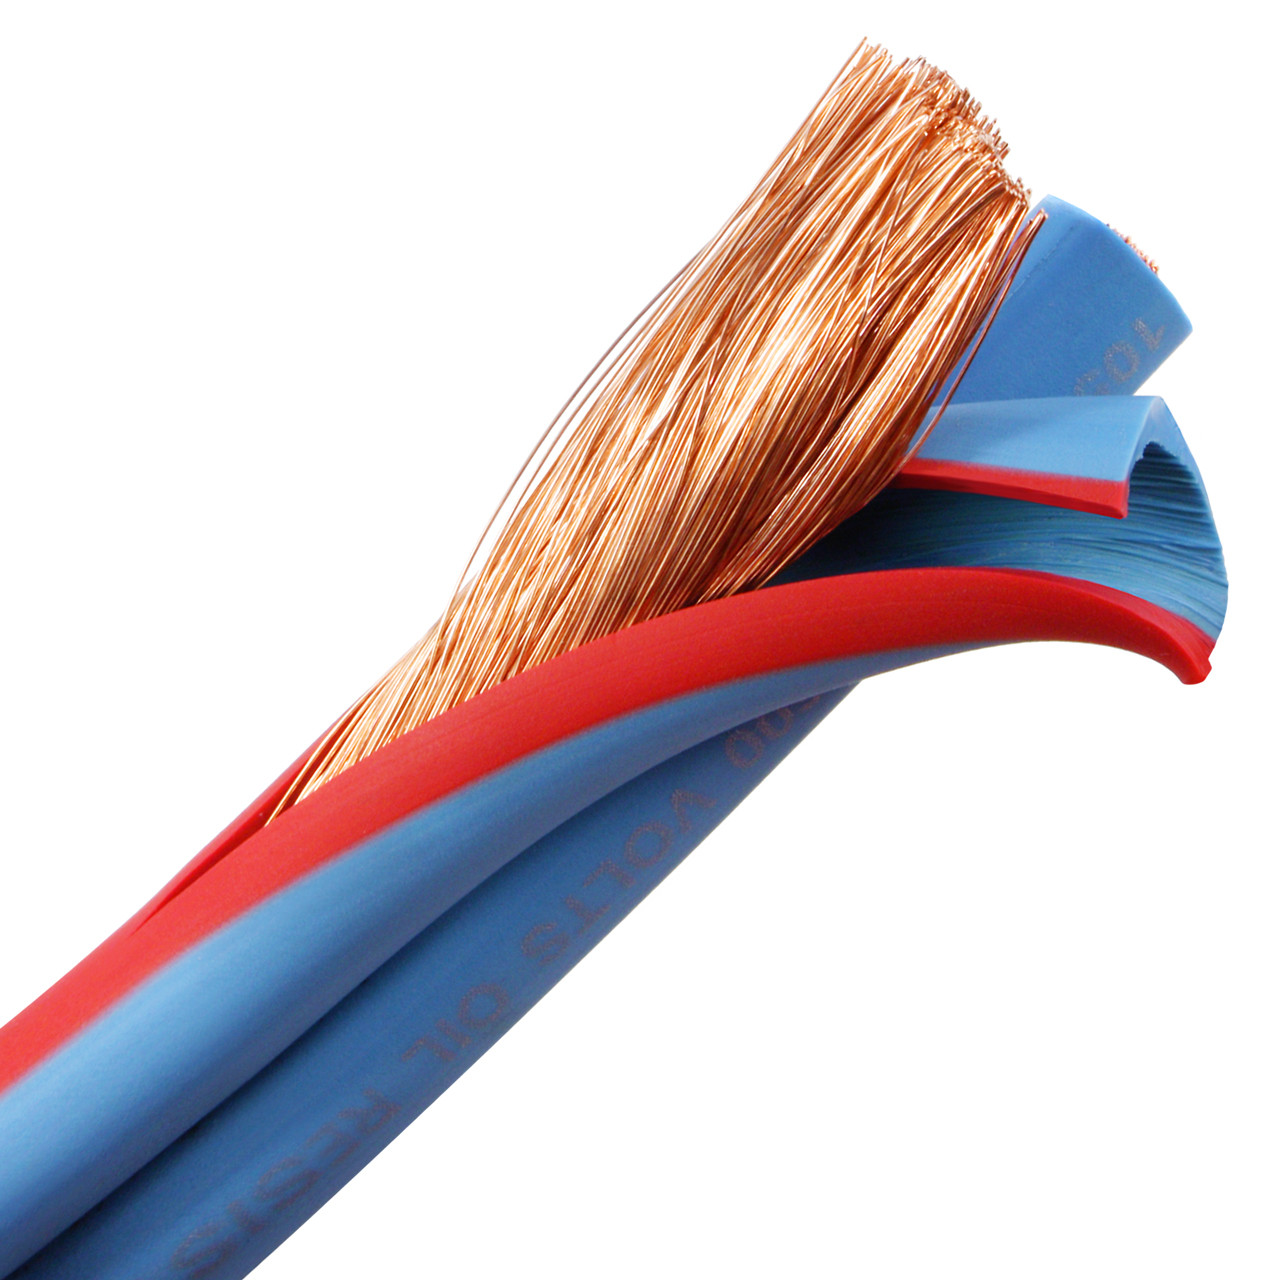 Arctic Superflex Blue 4 AWG flexible, fine stranded 100% copper parallel bonded twin wire is made in the USA